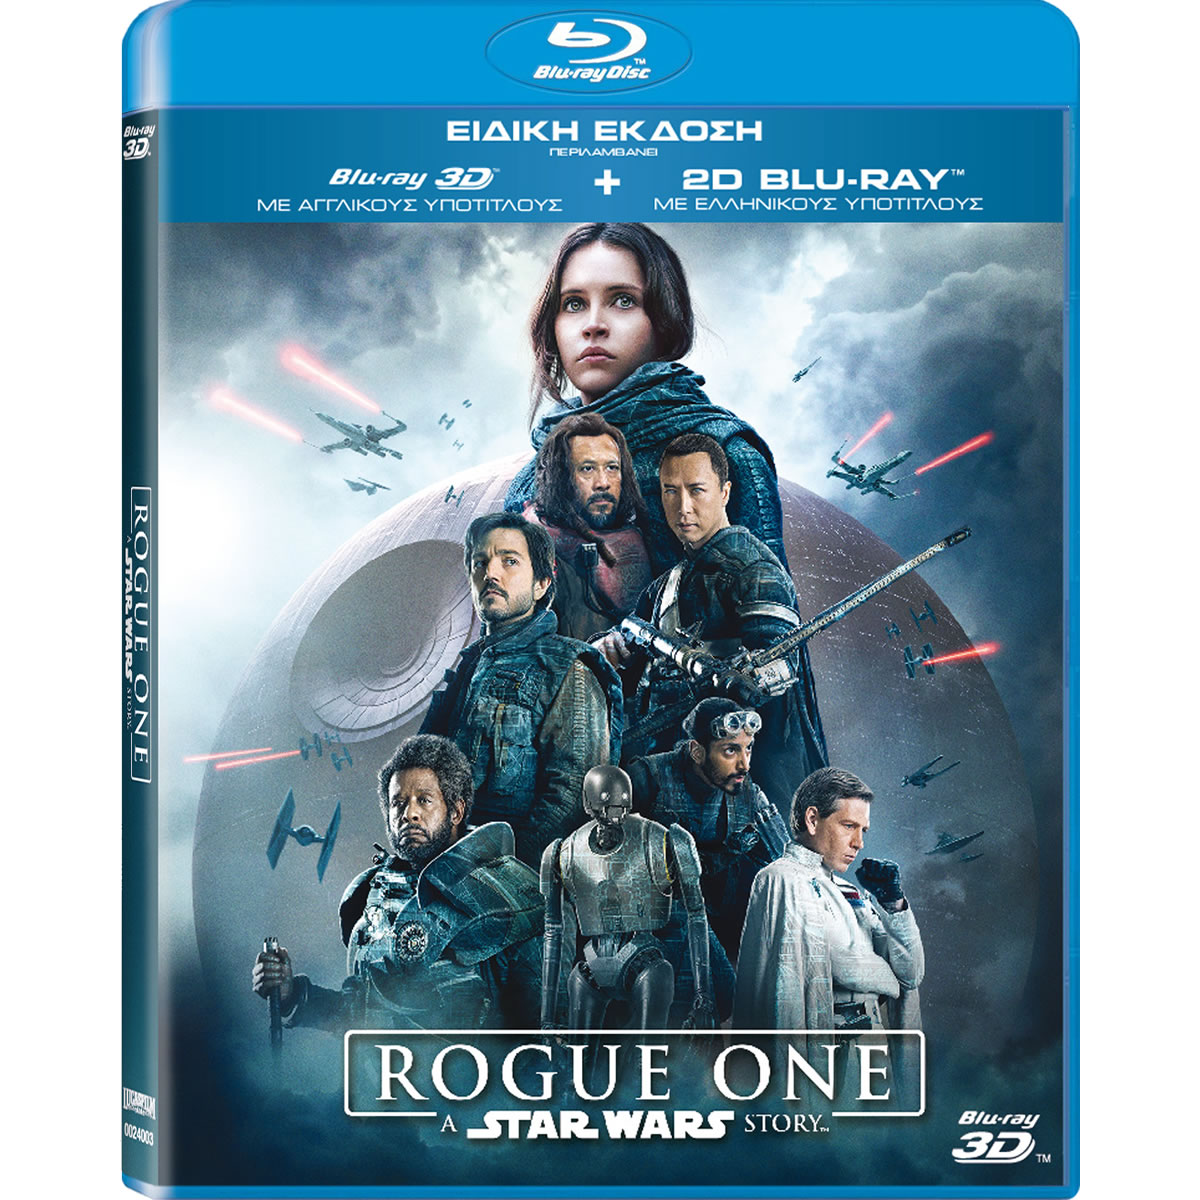 ROGUE ONE: A STAR WARS STORY 3D Special Edition Superset (BLU-RAY 3D + 2 BLU-RAY)